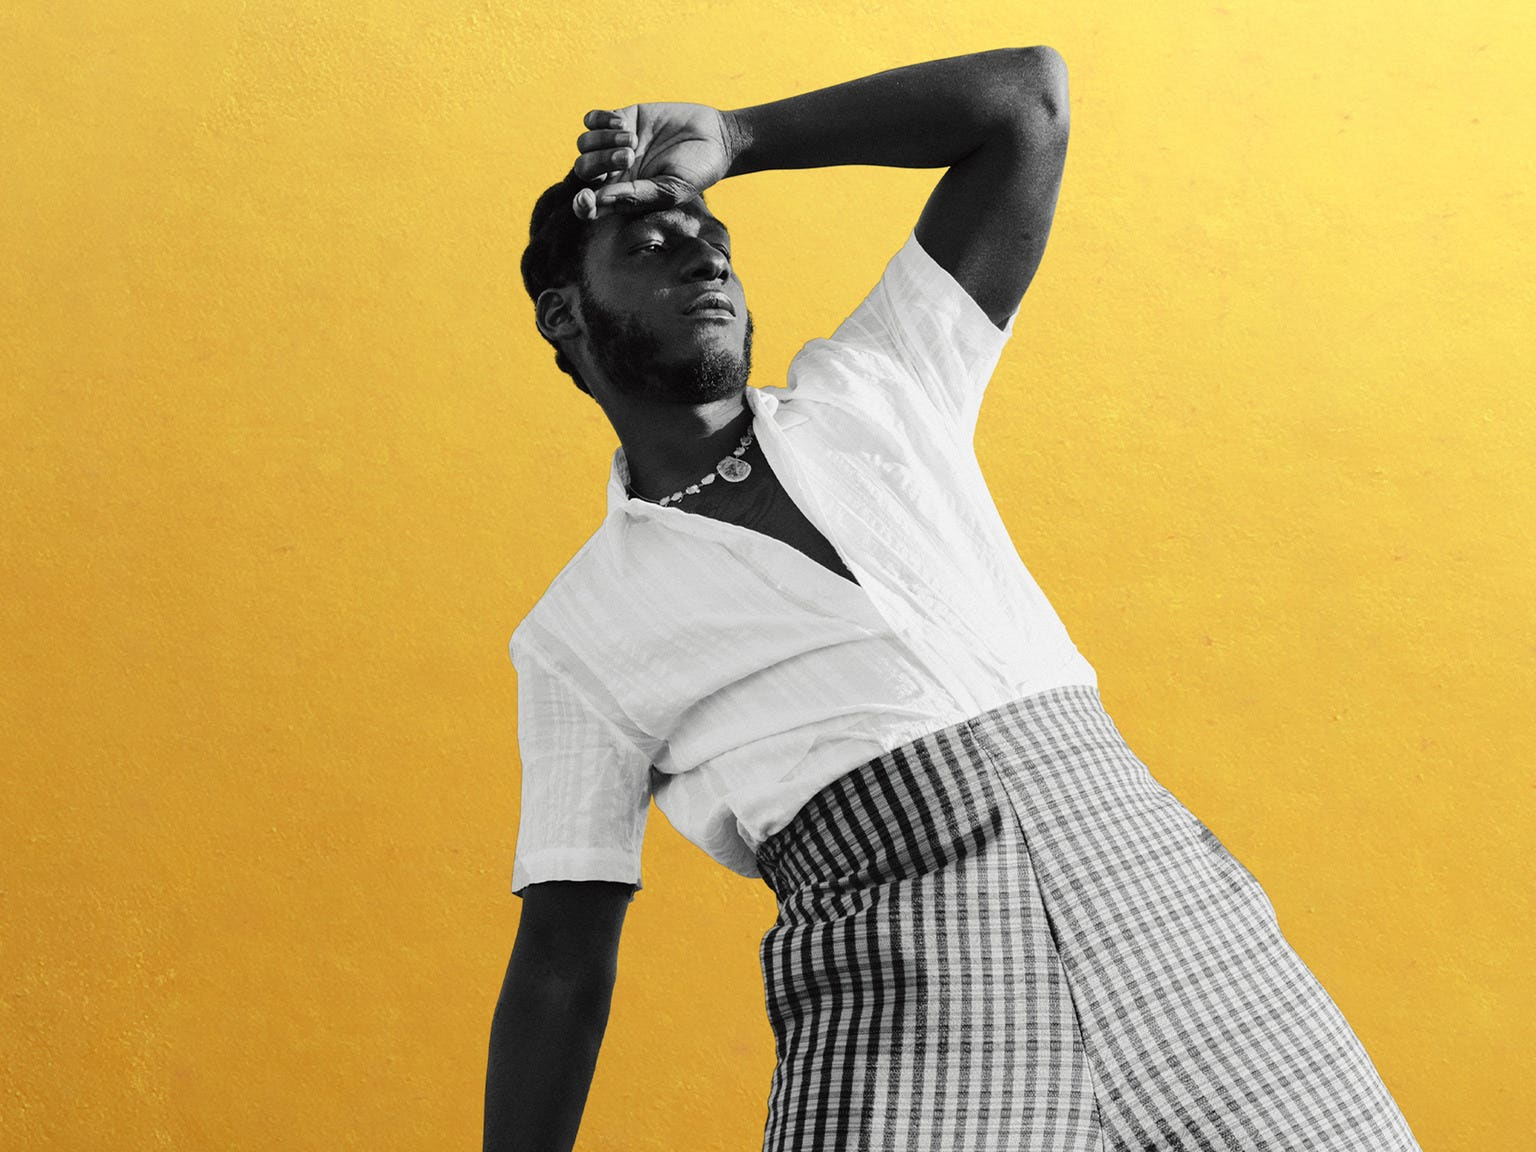 Main image for event titled An Evening With Leon Bridges